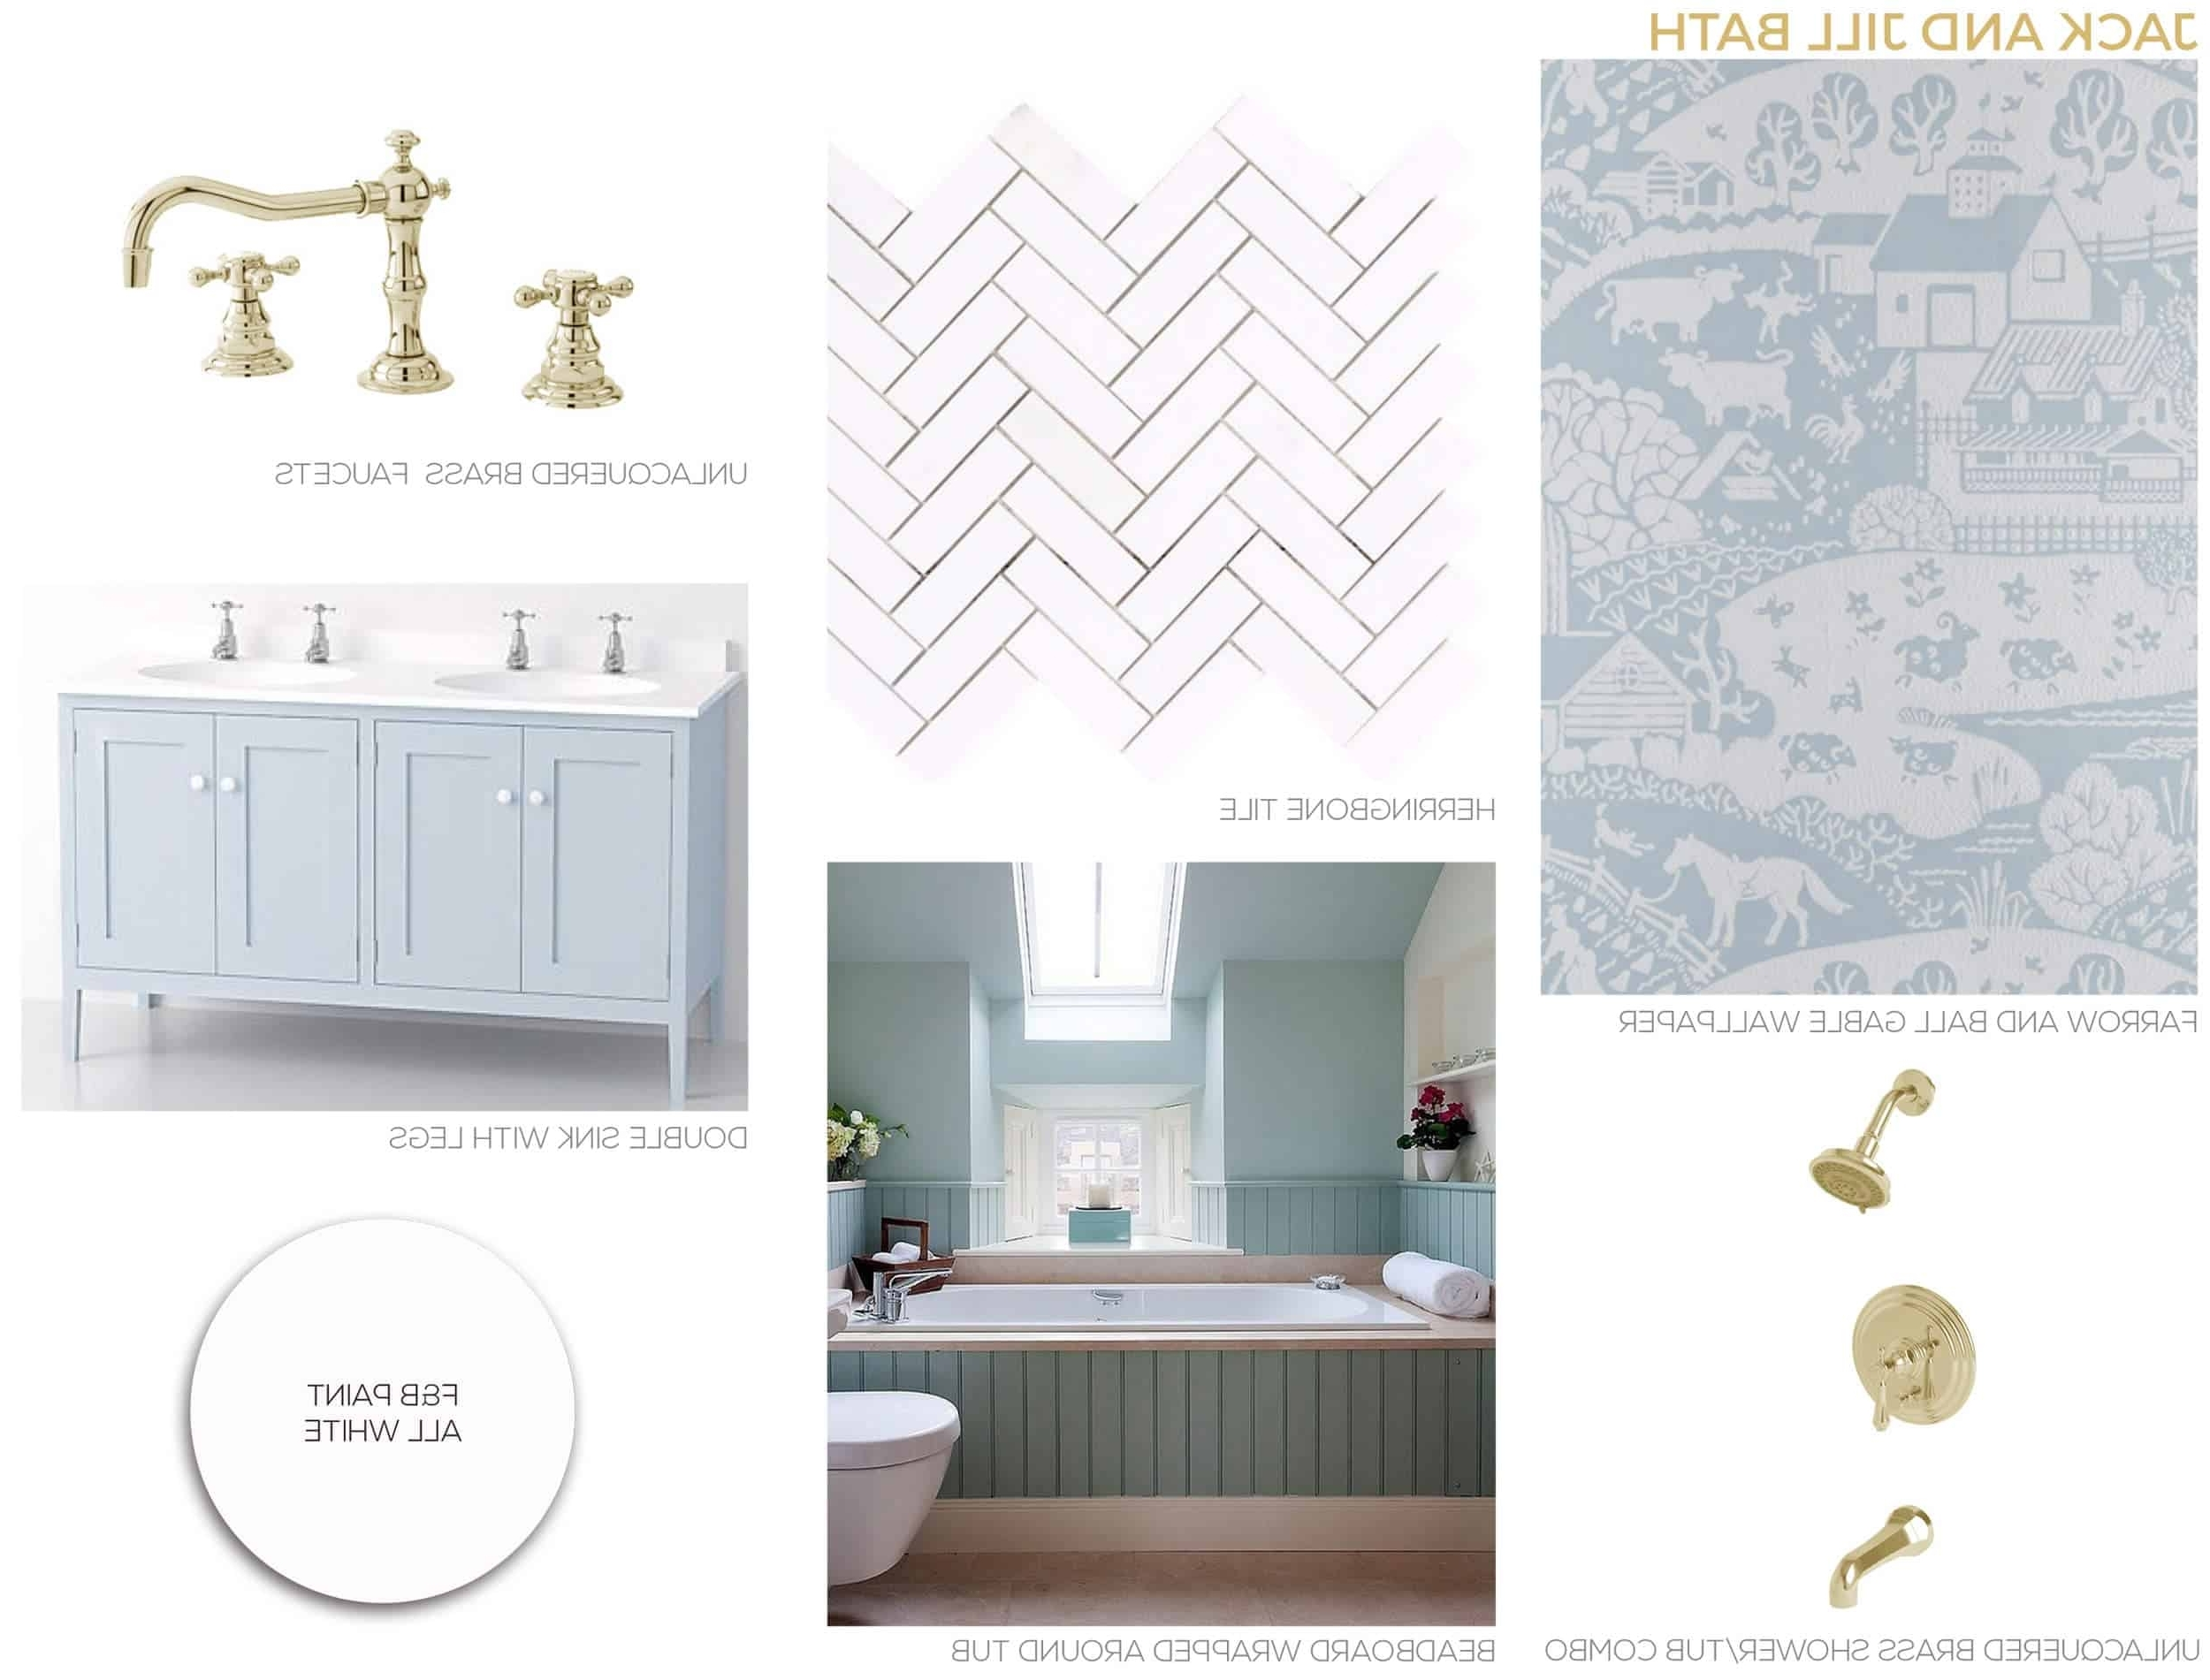 Our New Jack And Jill Bathroom Plan + Get The Look Emily 20+ Cute Jack And Jill Bathroom Inspirations